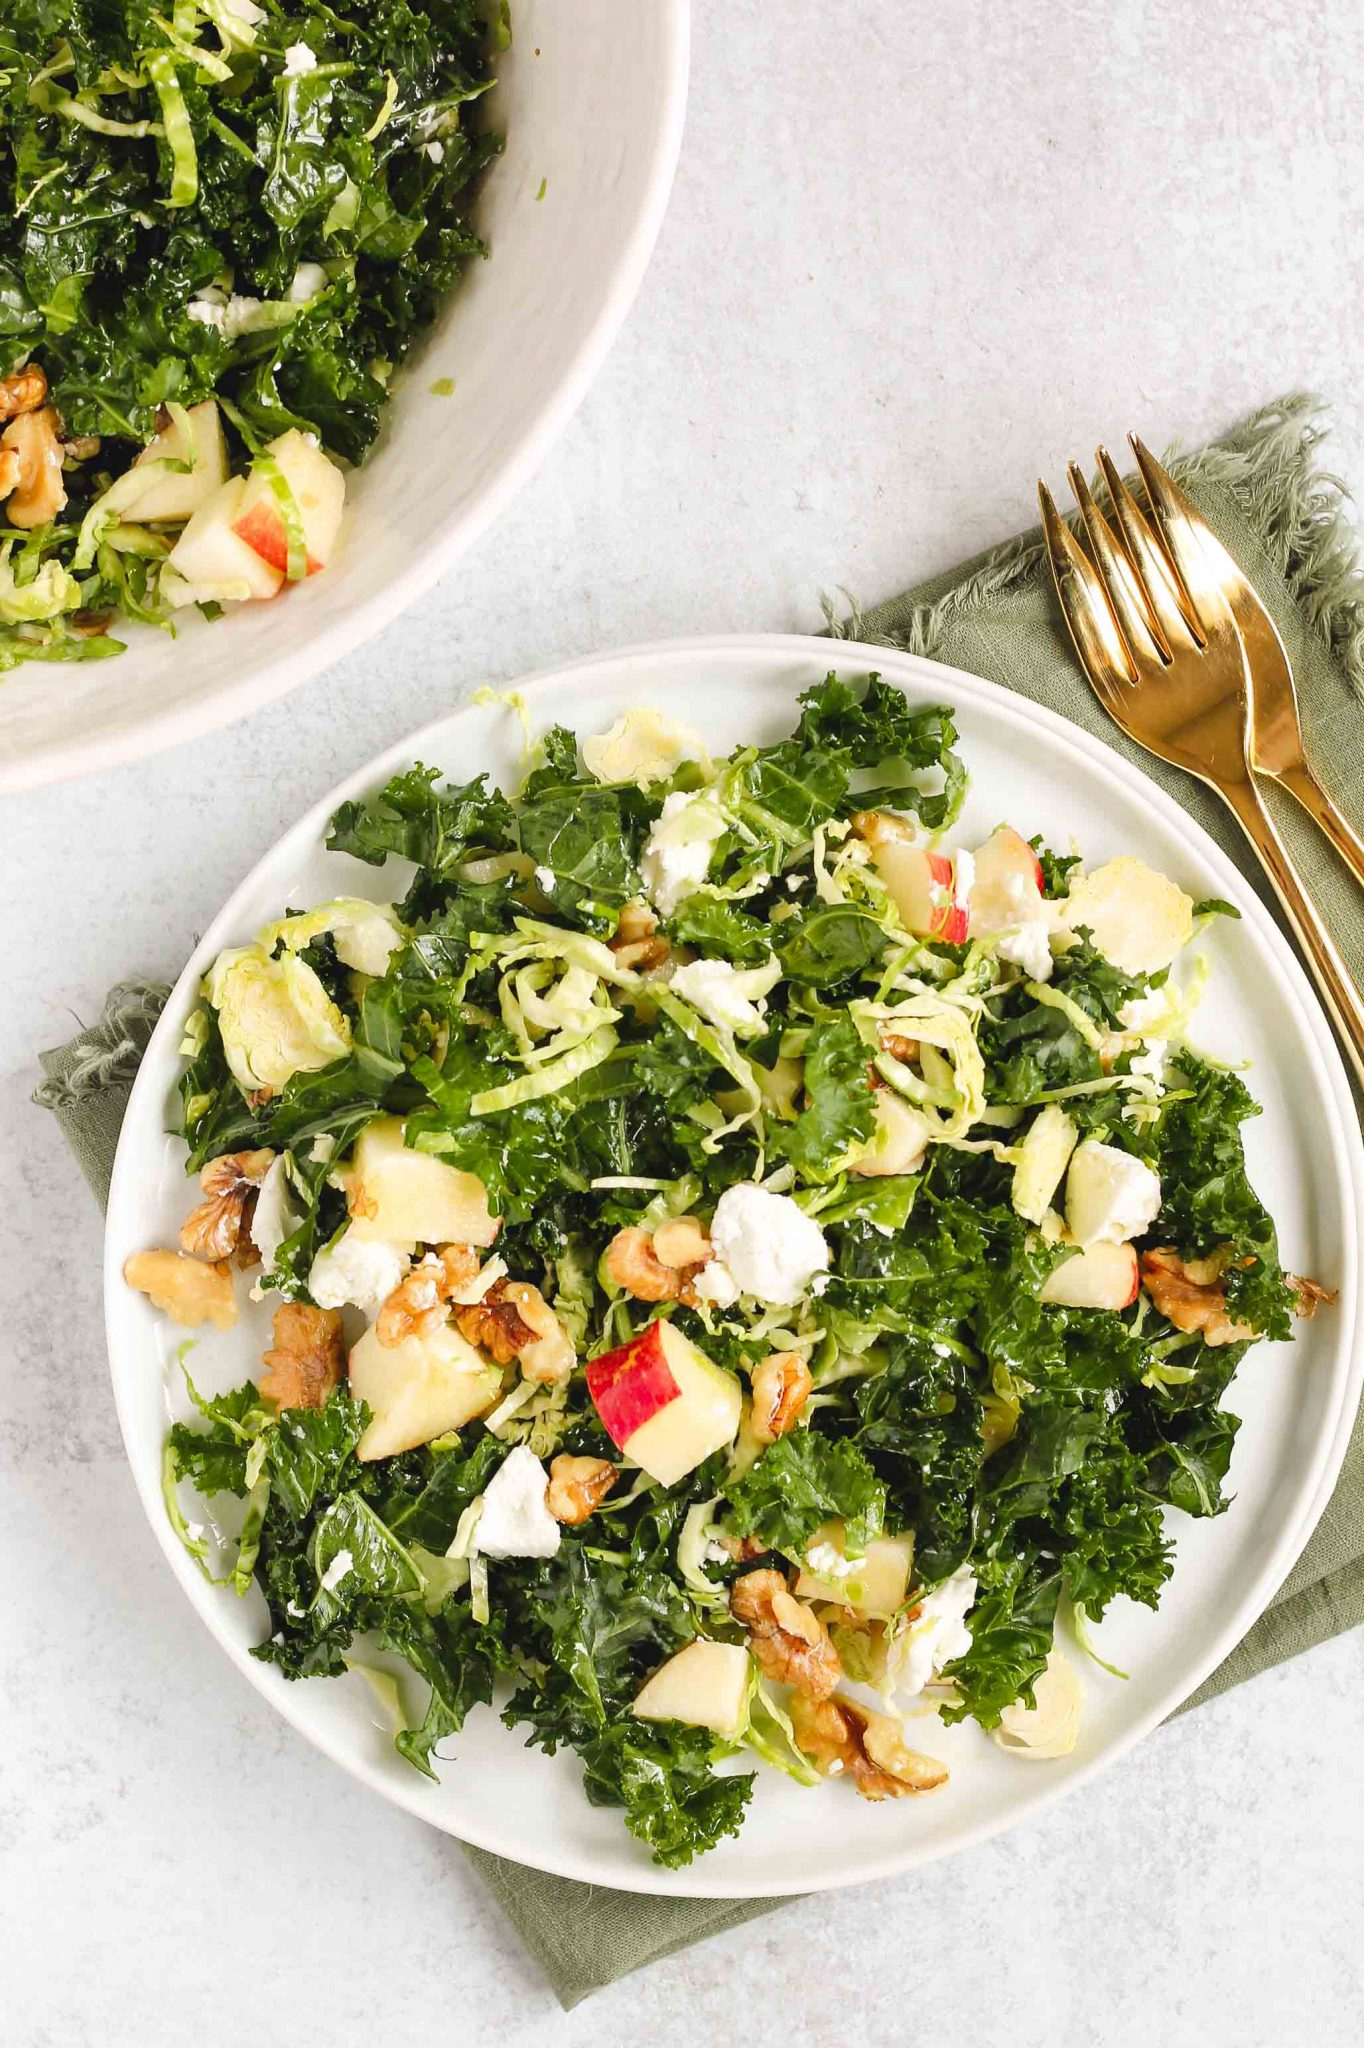 kale salad on white serving plate with gold forks